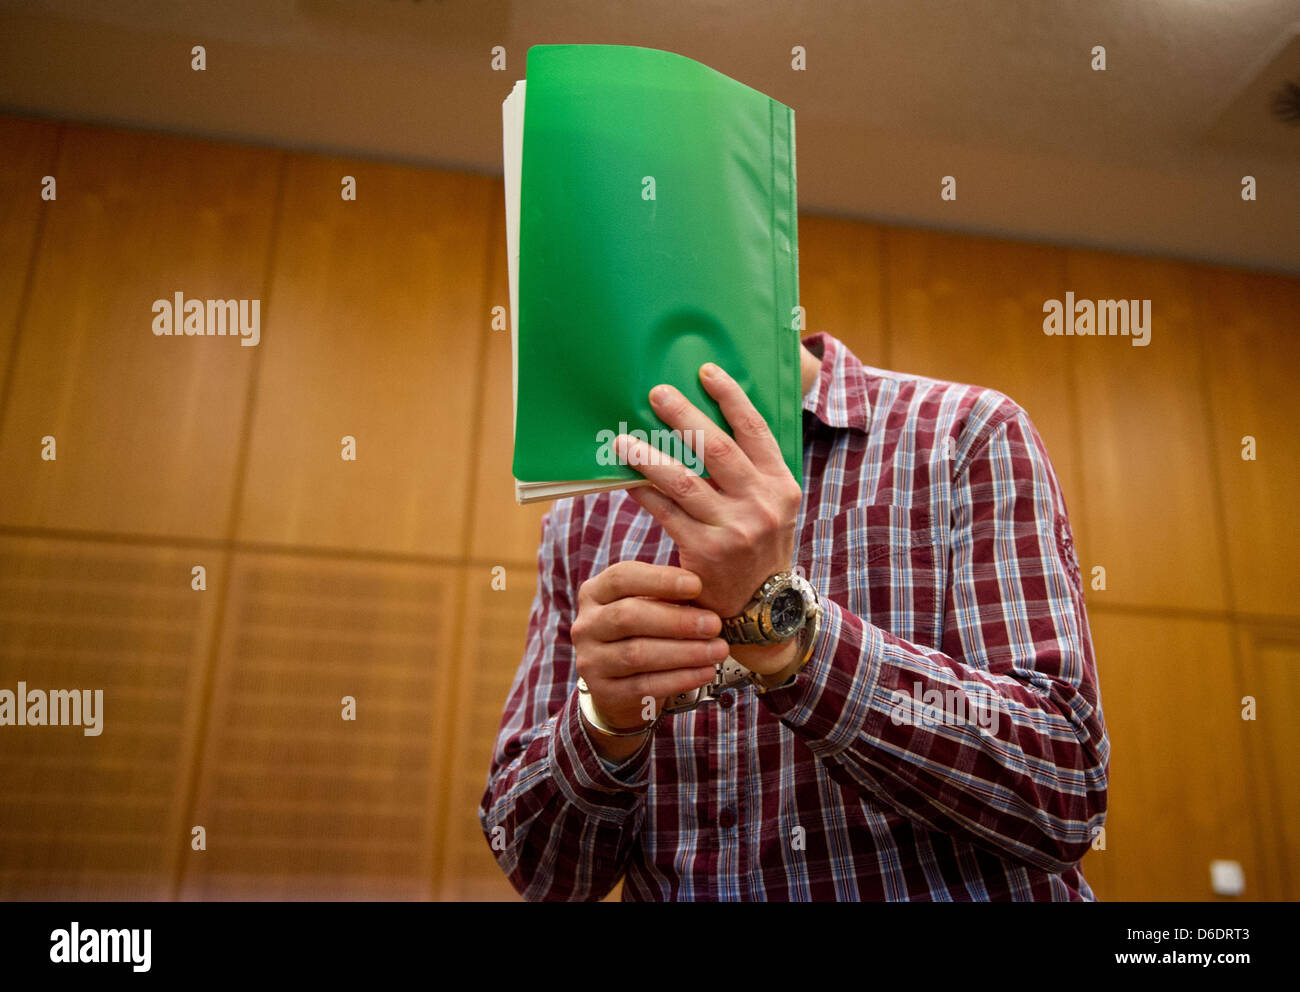 Bus hijacker Thomas Feldmann hides his face behind files at the start of his trial in a high-security court room Stock Photo